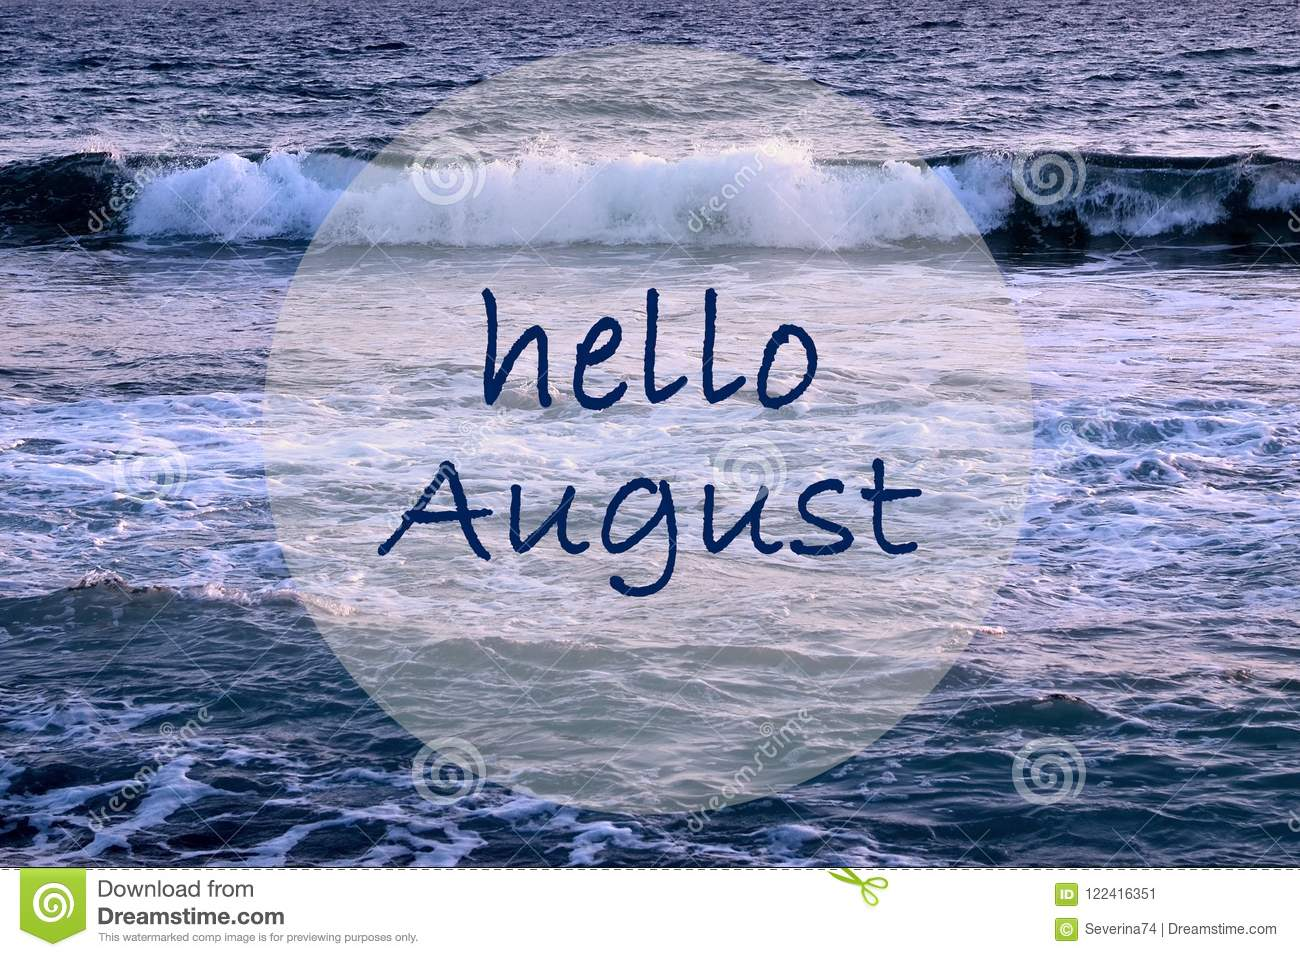 hello august greeting on ocean waves background summer concept